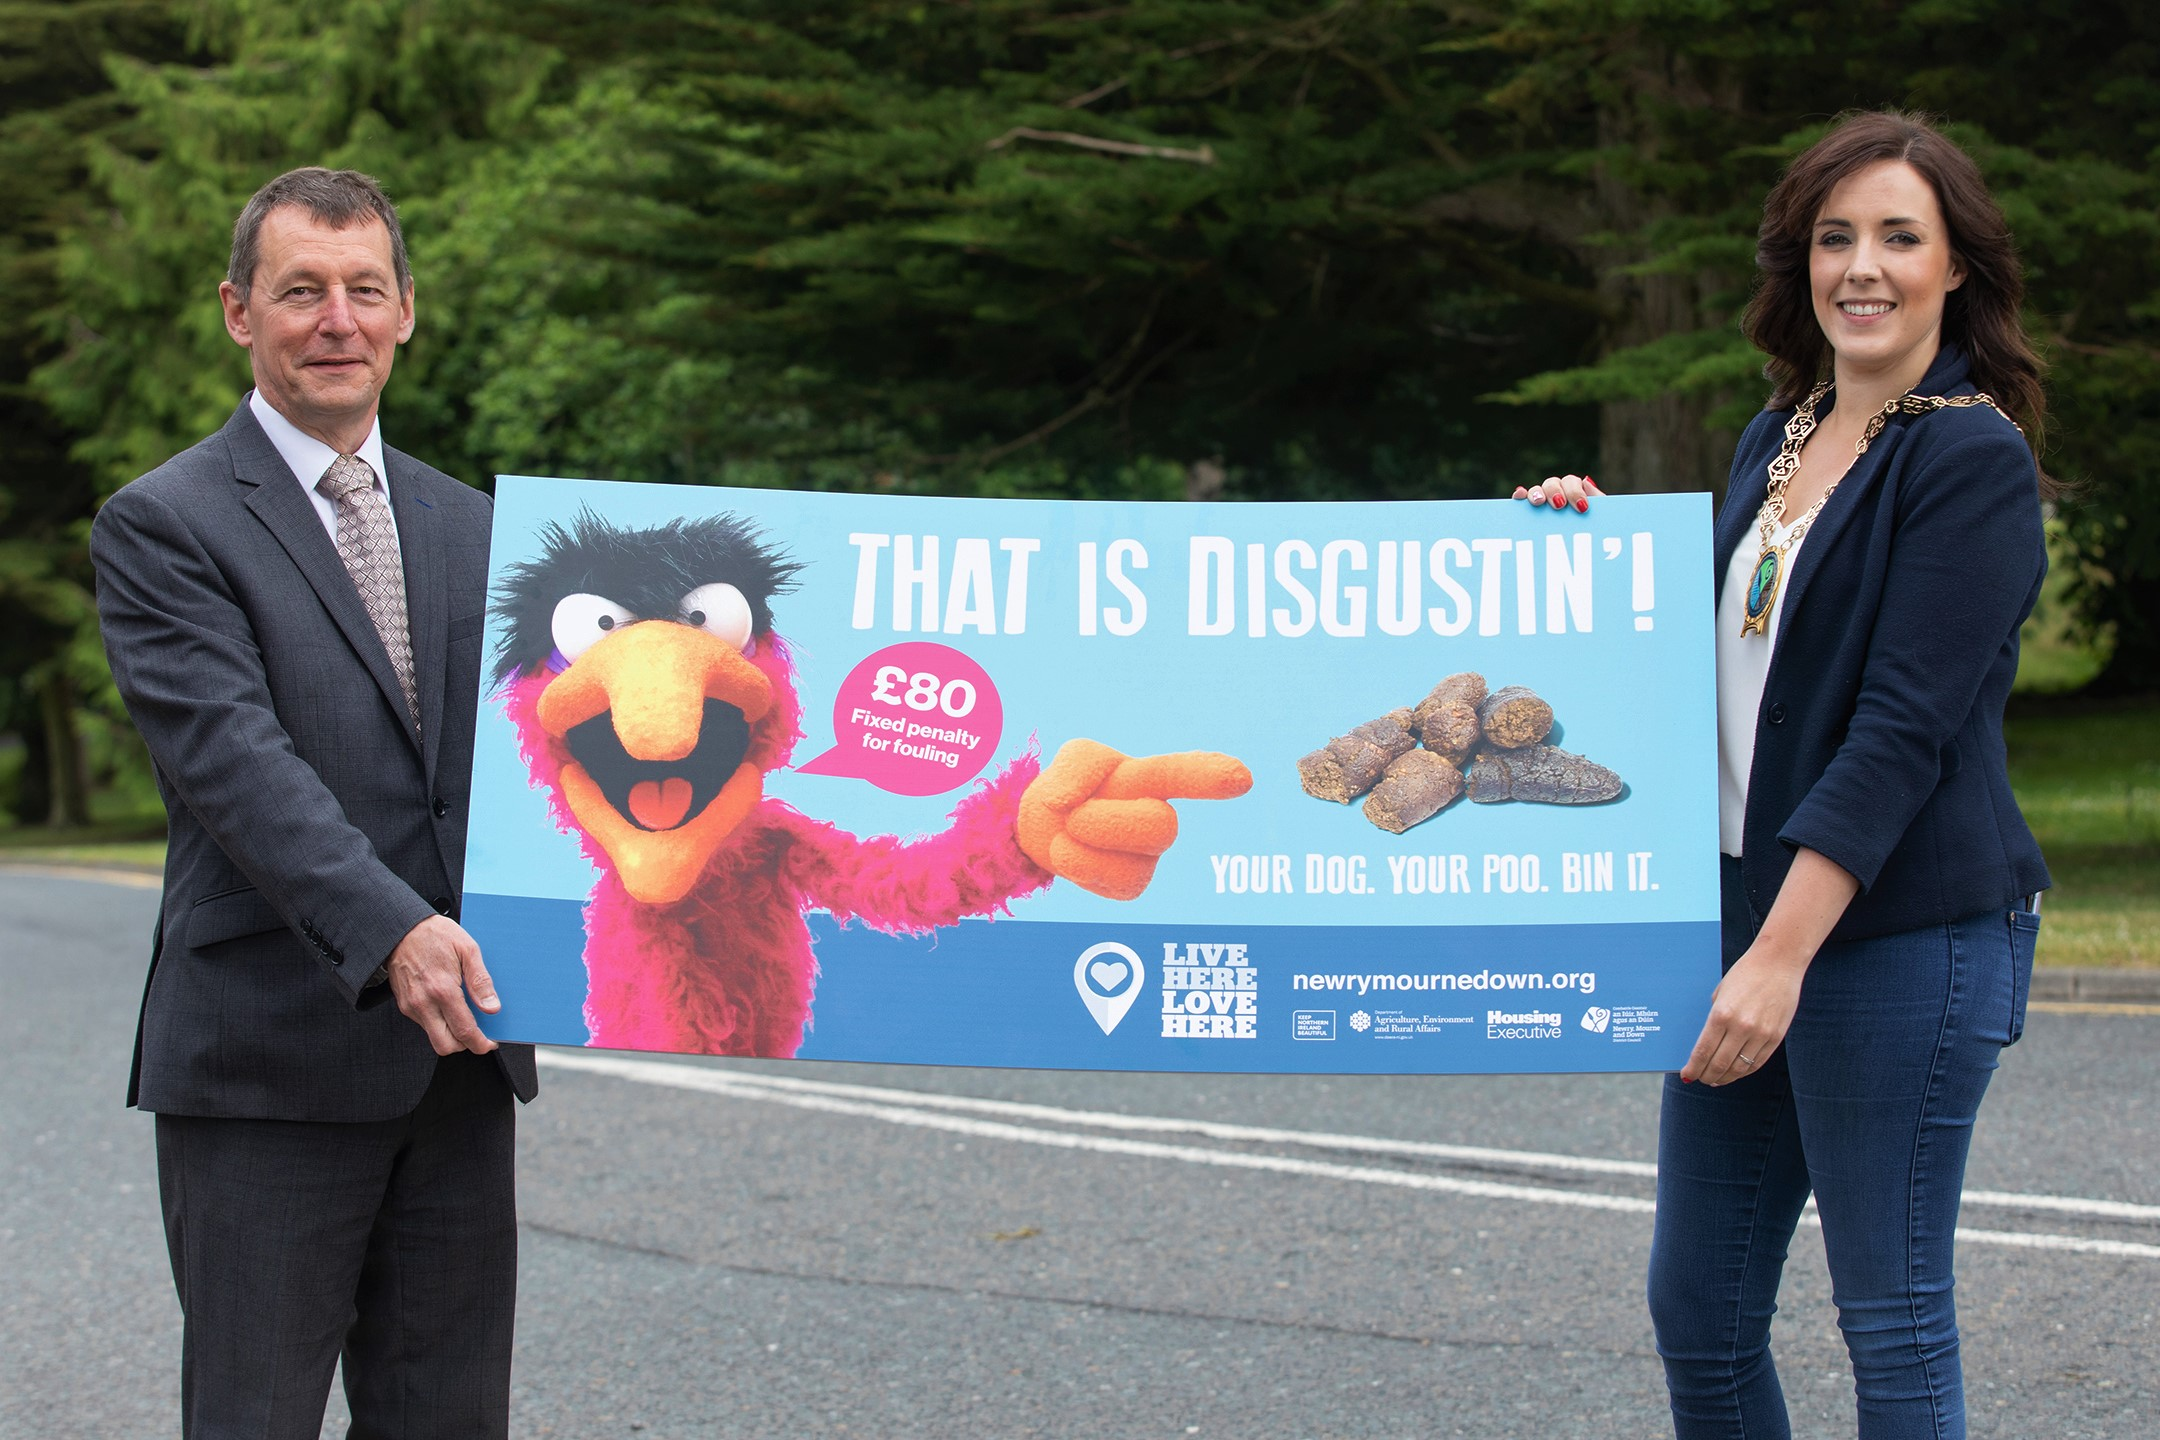 Council Targets Dog Fouling in New Responsible Dog Ownership Campaign - newry council - newry news